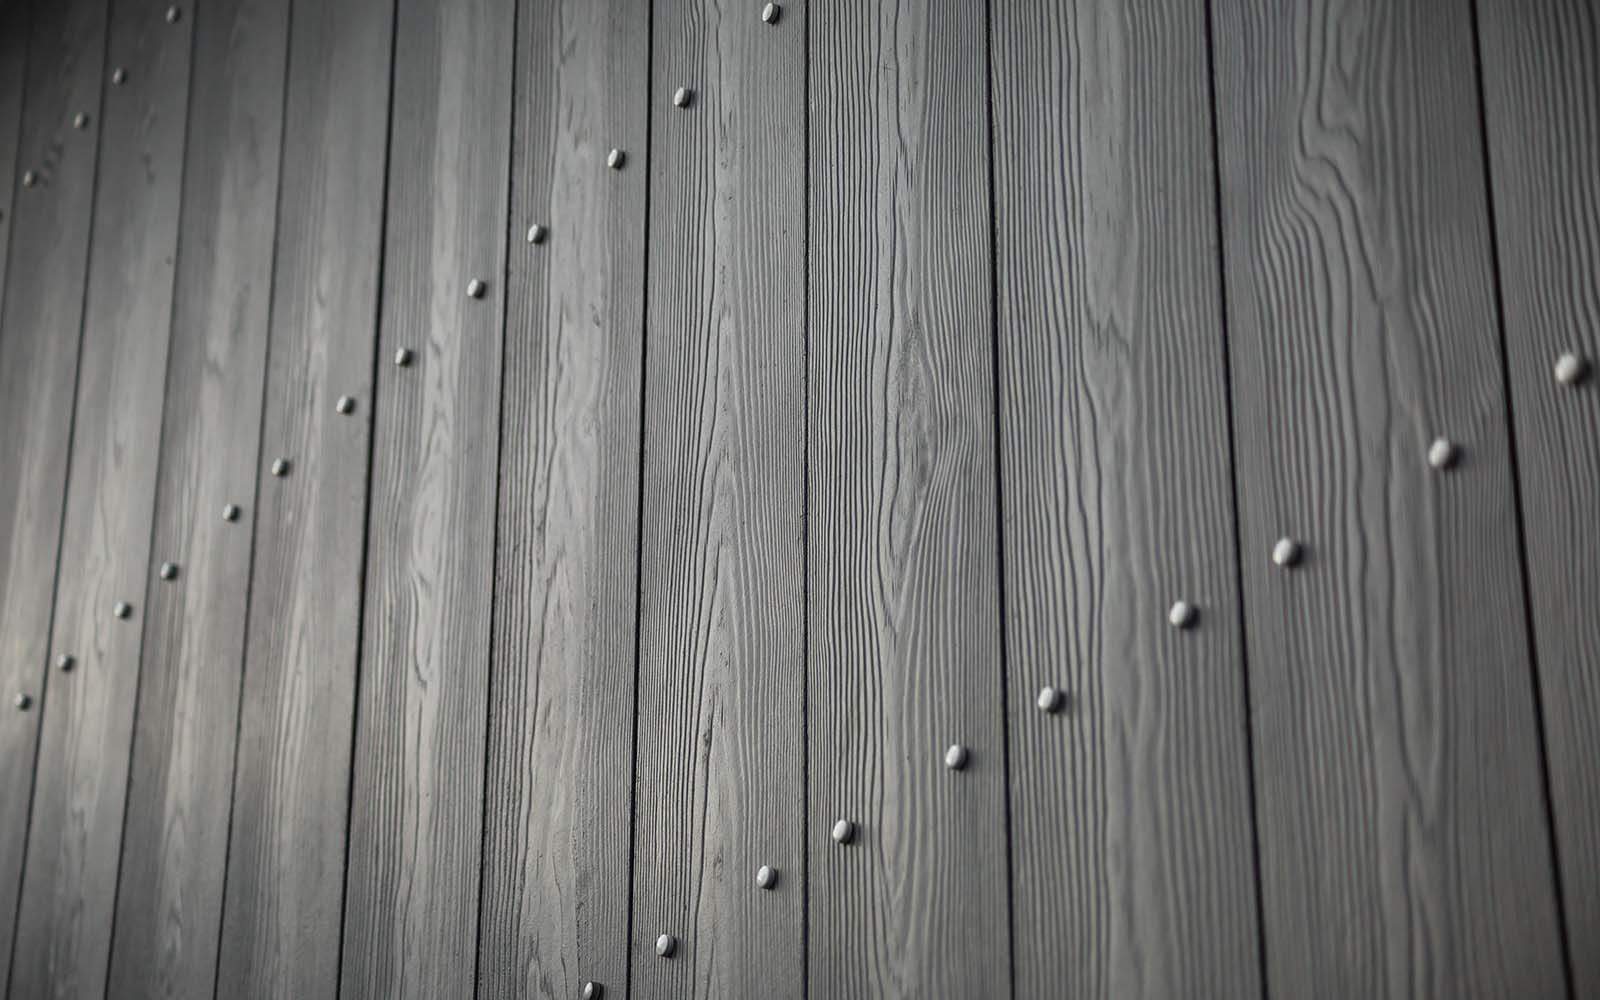 Cedral Lap Weatherboard Fibre Cement Wood Effect Weatherboard Cladding Fasad Dom